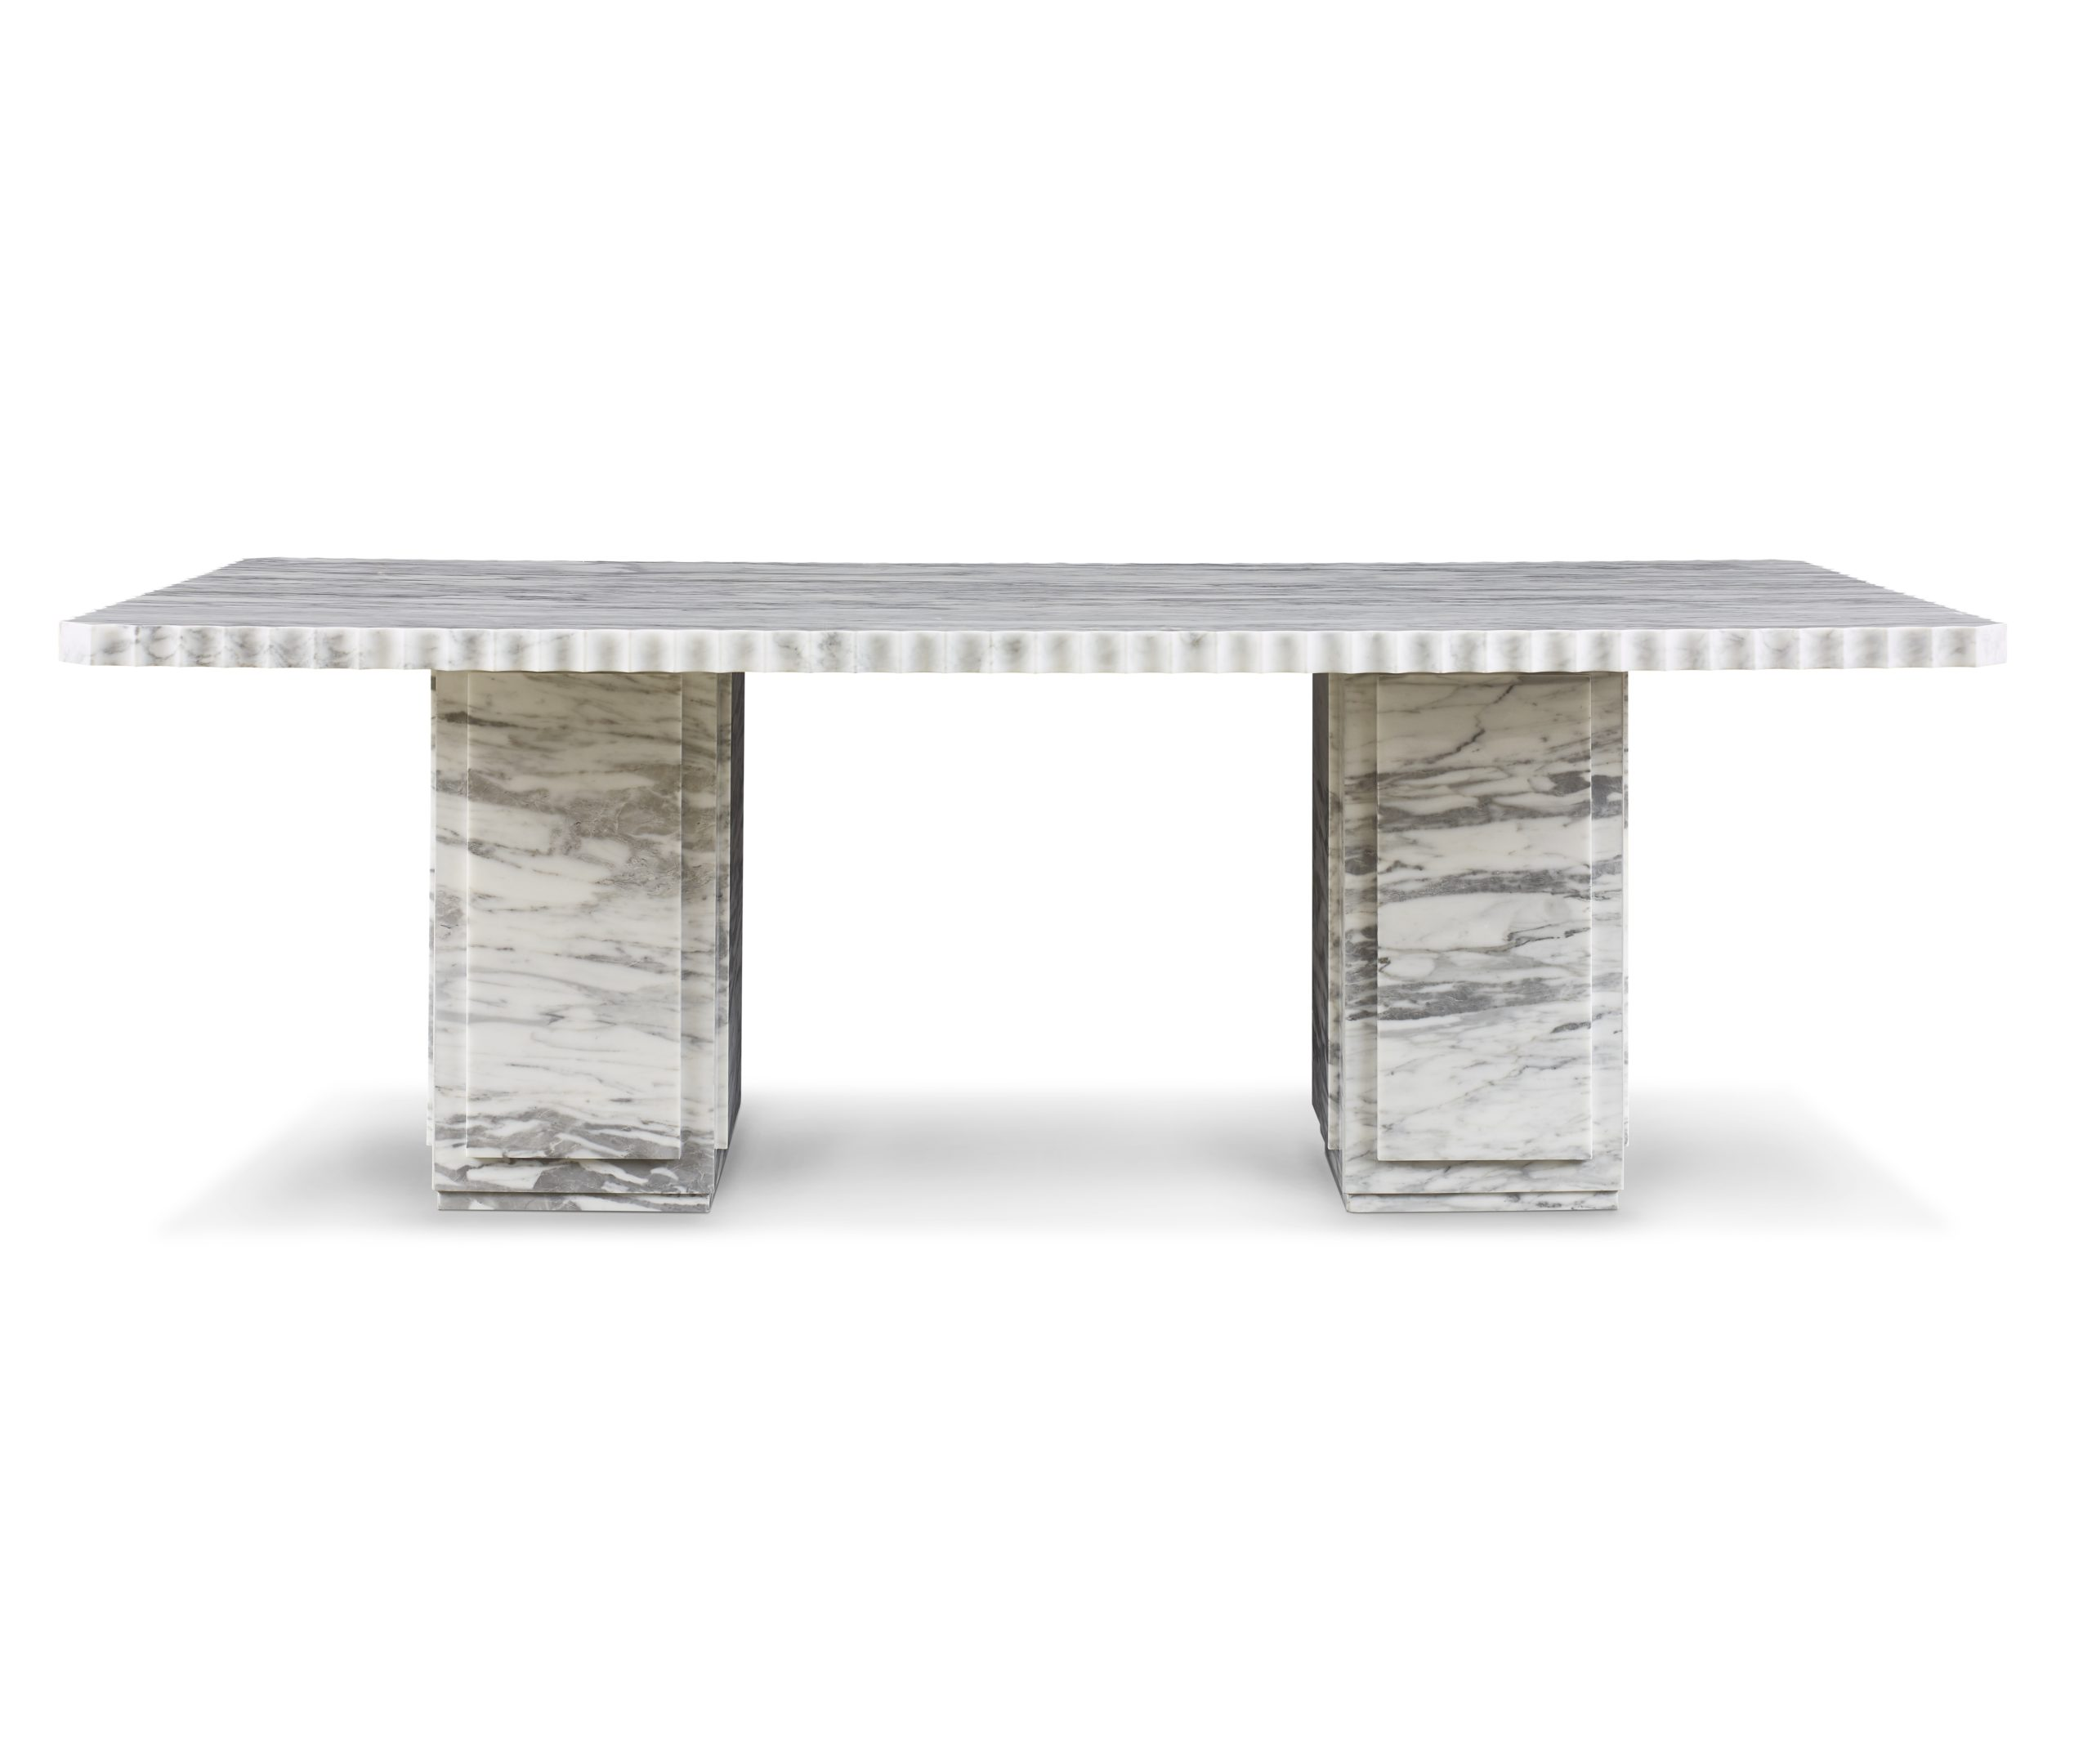 Baker_products_WNWN_marquis_rectangle_dining_table_BAA3239_FRONT-scaled-2